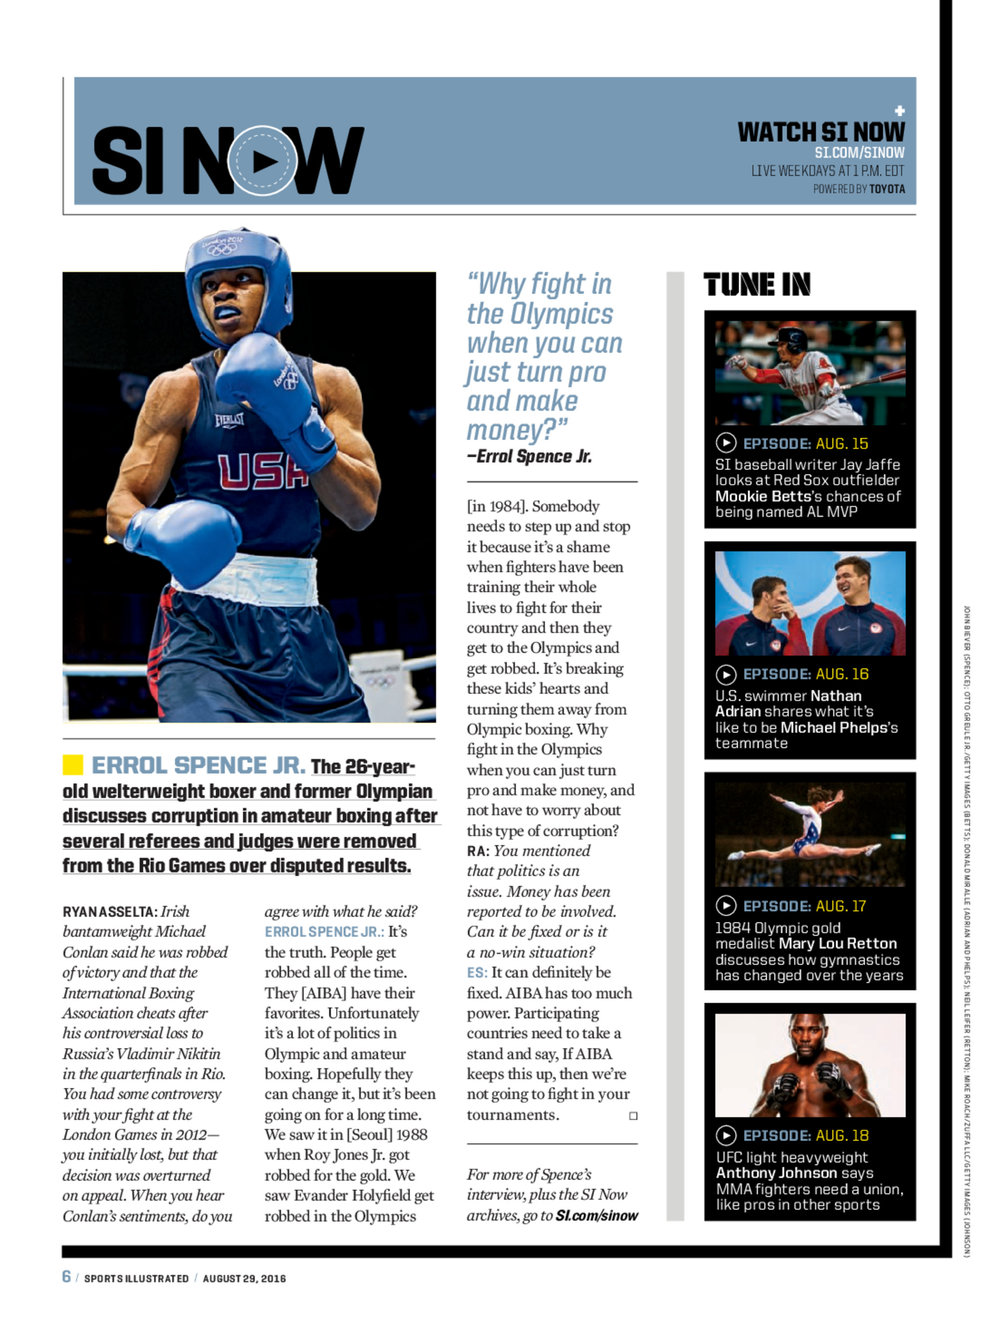 ERROL SPENCE JR. visited sports illustrated prior to his august 2016 fight against leonard bundu while the rio olympics were underway. a recap of His Interview with SI NOW Landed in the weekly print edition of sports illustrated.